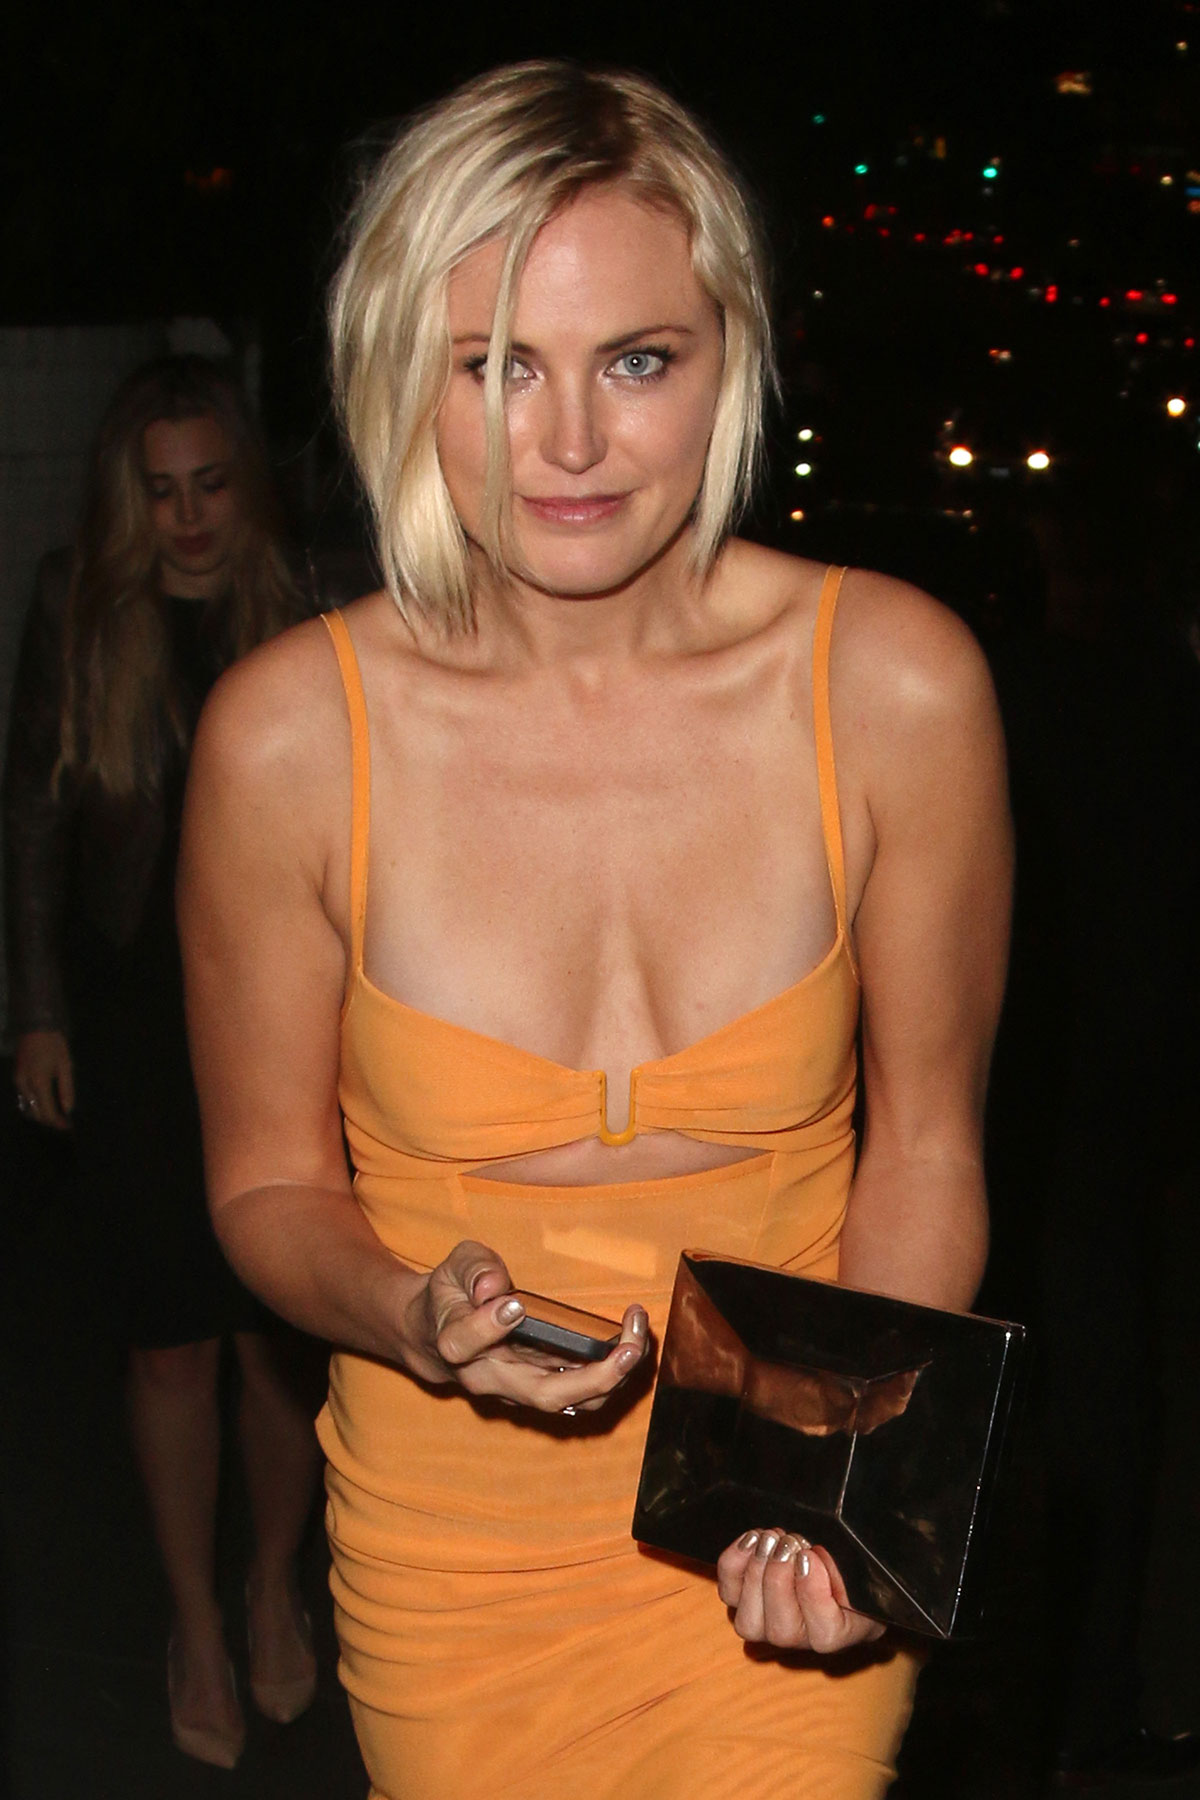 Malin Akerman naked (92 photos), Tits, Cleavage, Twitter, cleavage 2015